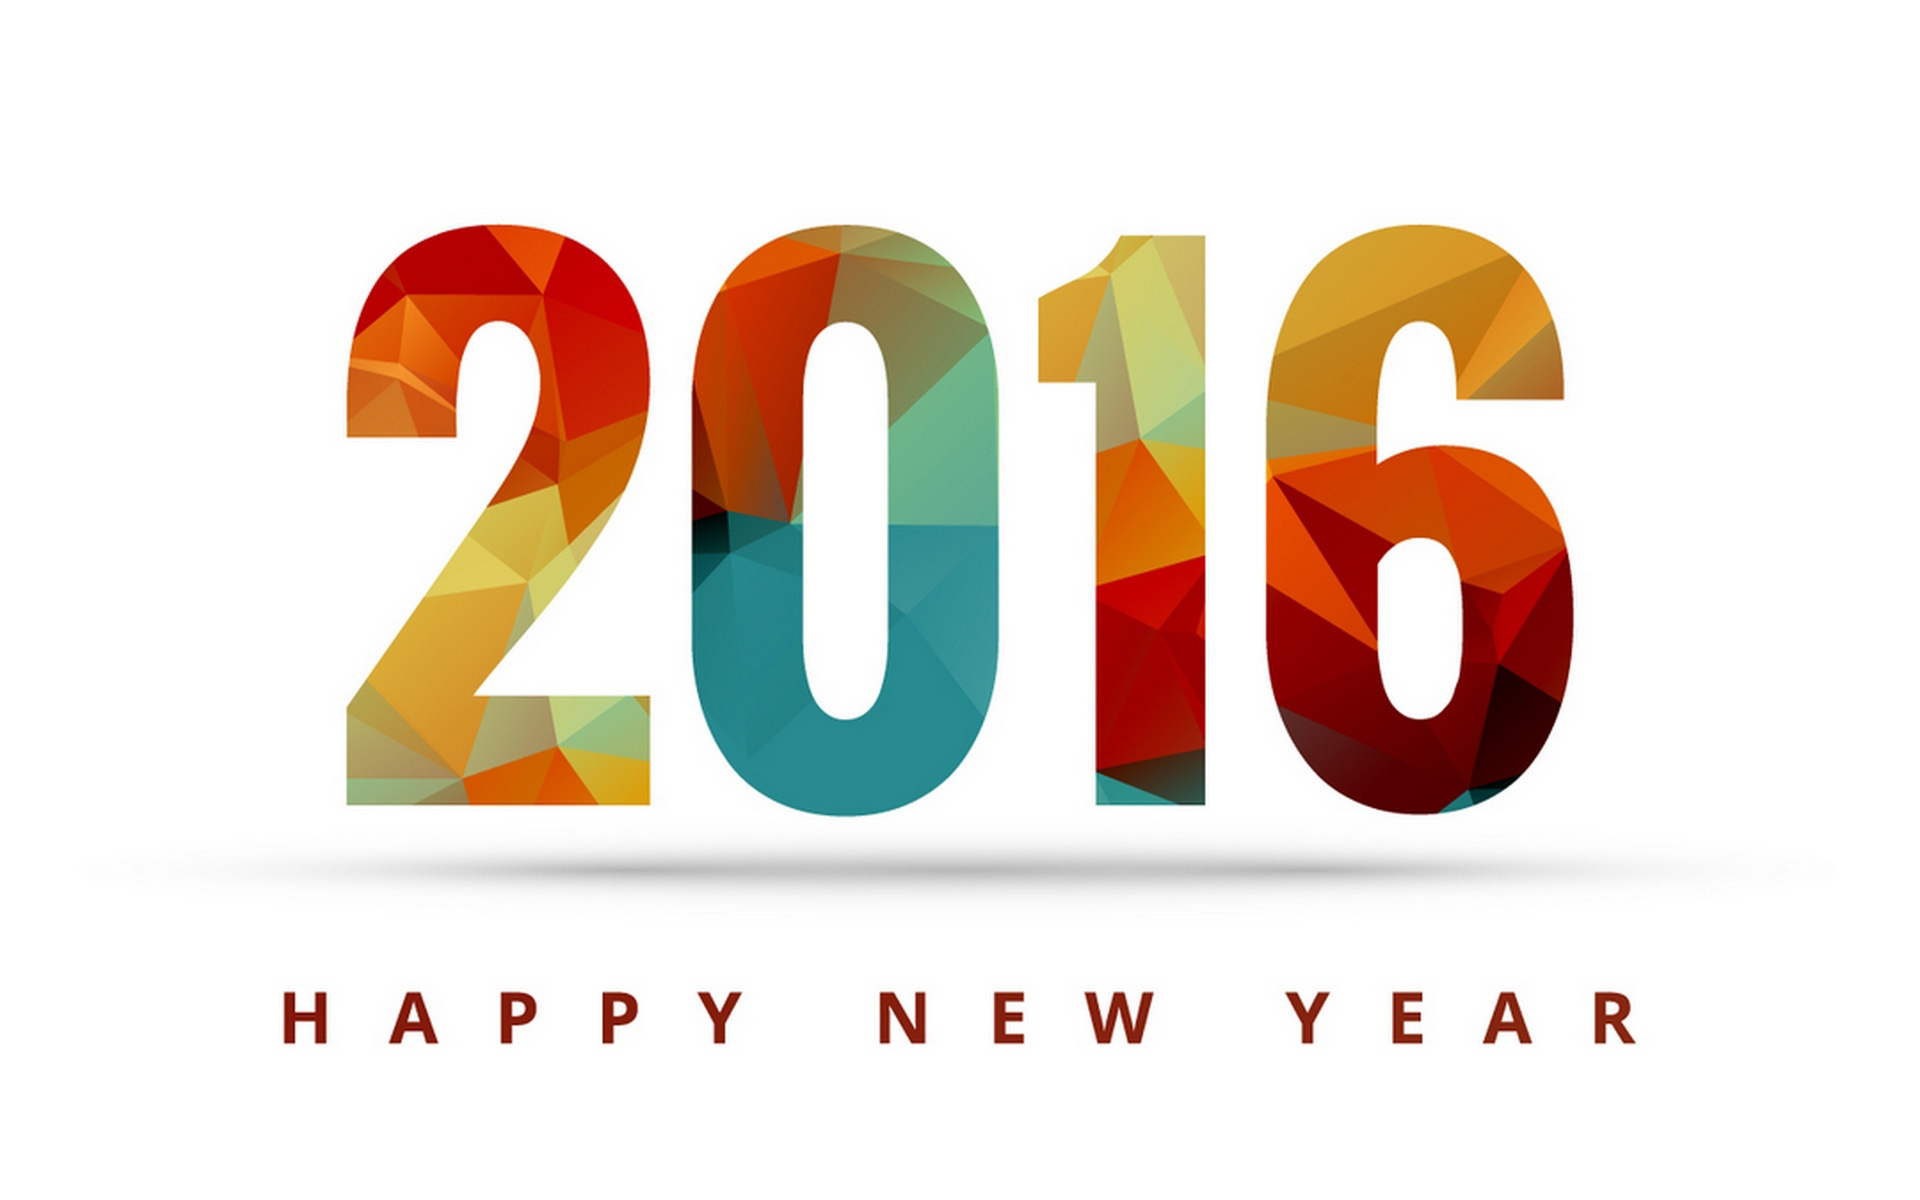 2016 Happy New Year Wallpapers HD Wallpapers 1920x1200